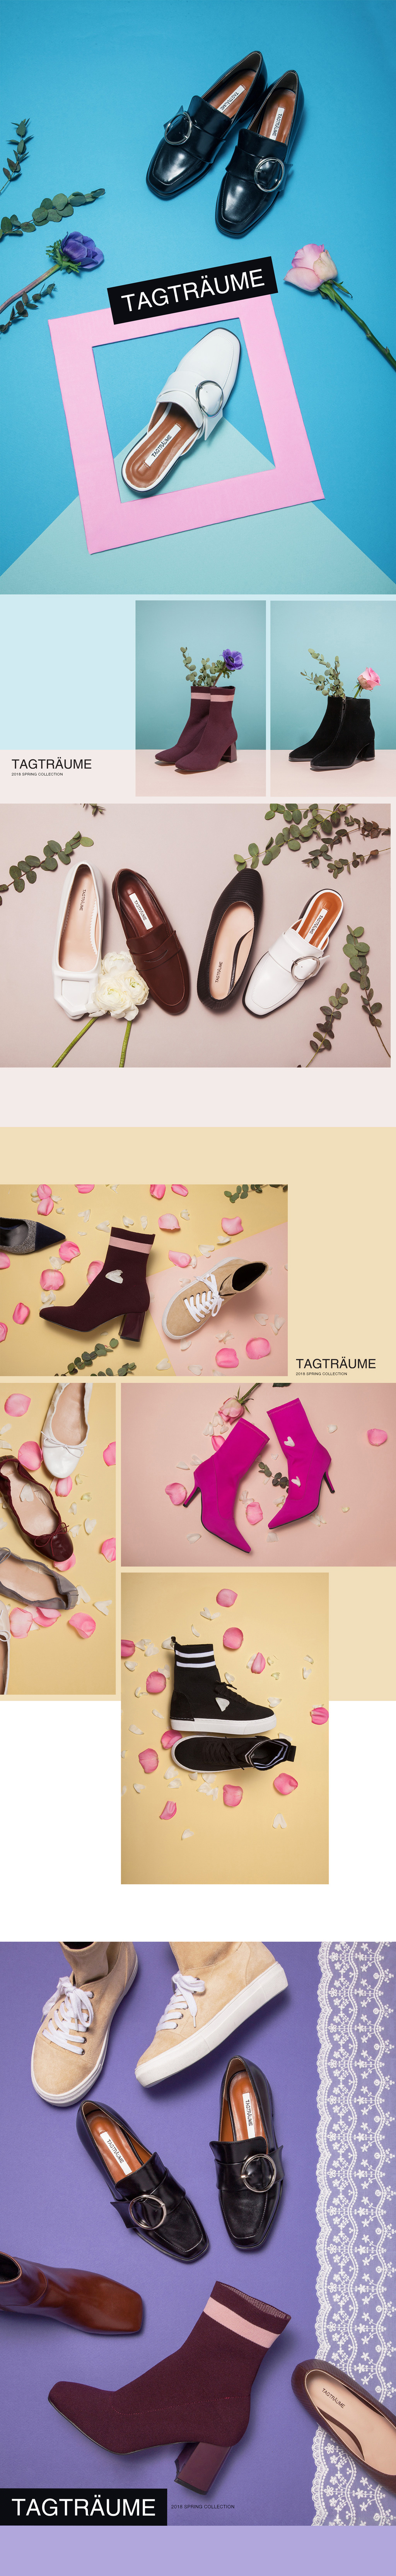 2018 Tagtraume Spring Collection